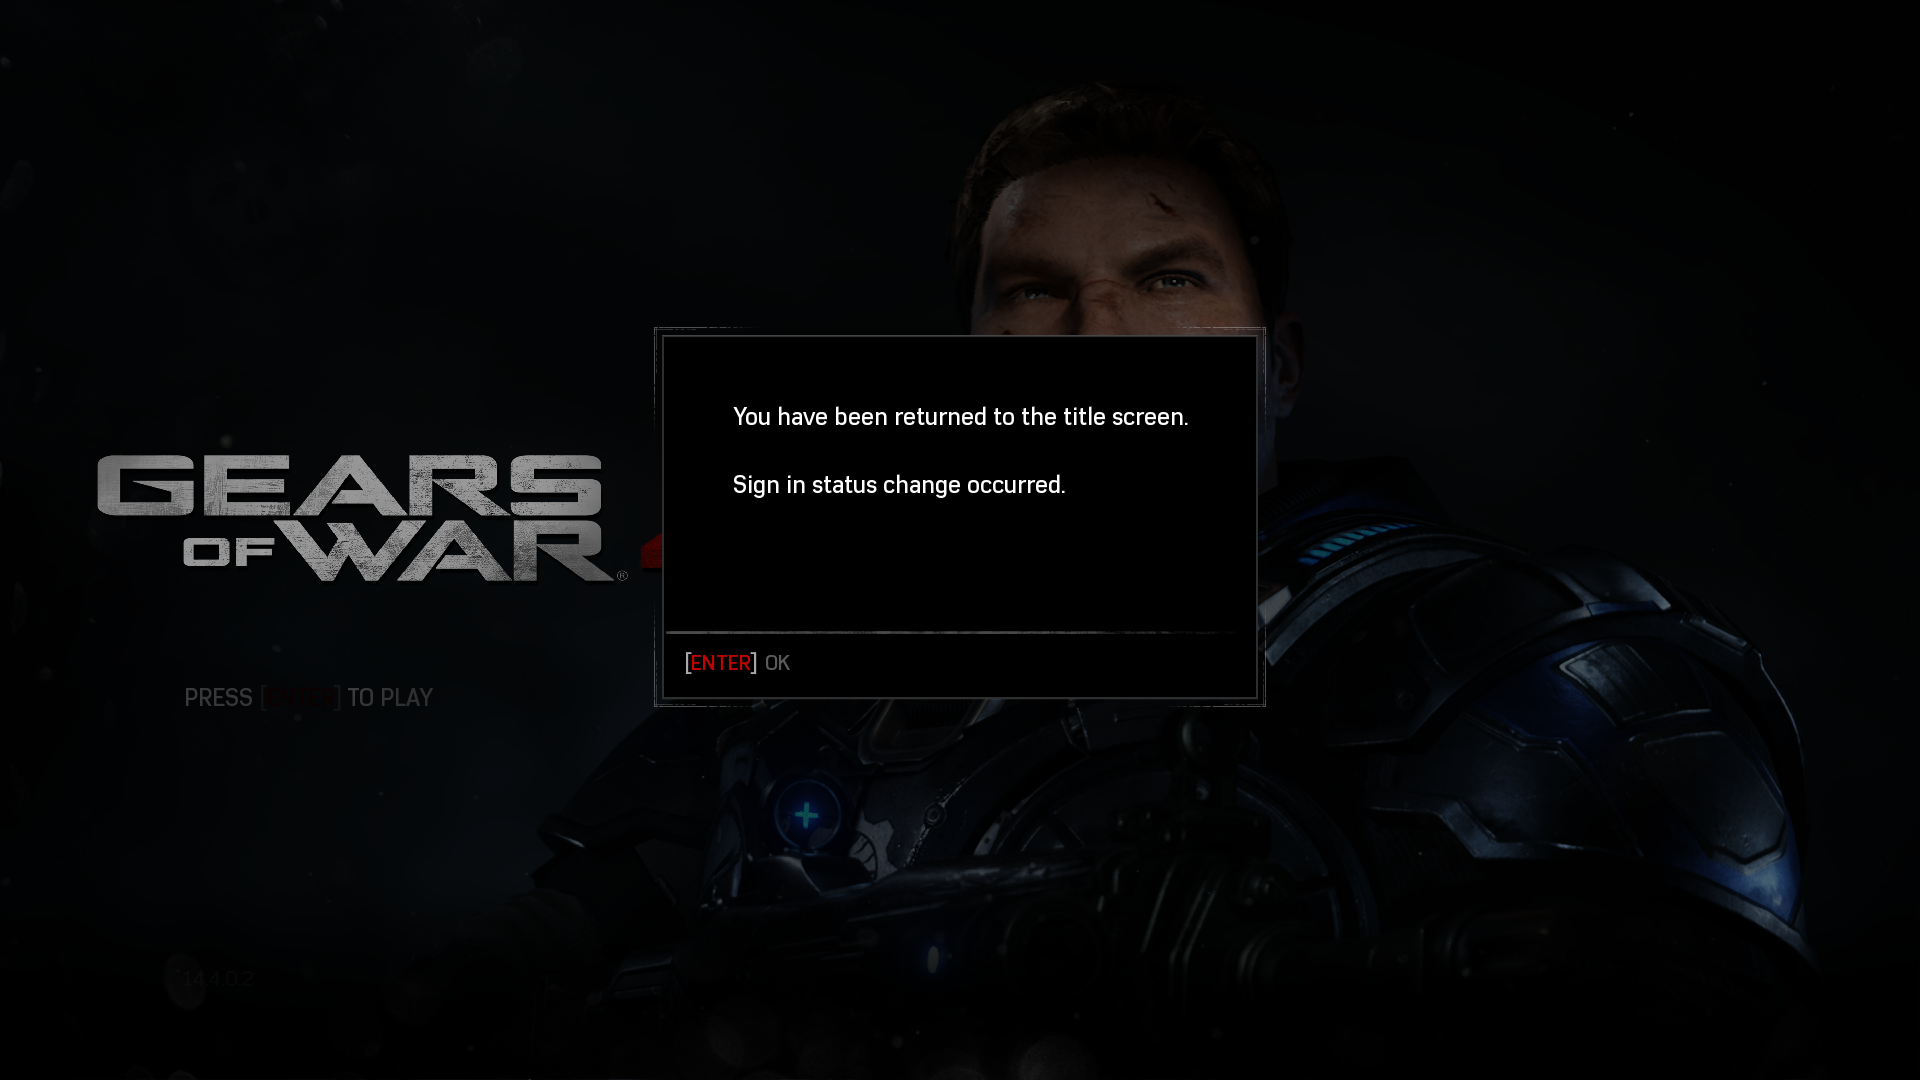 Game as a service is bad [IMG]